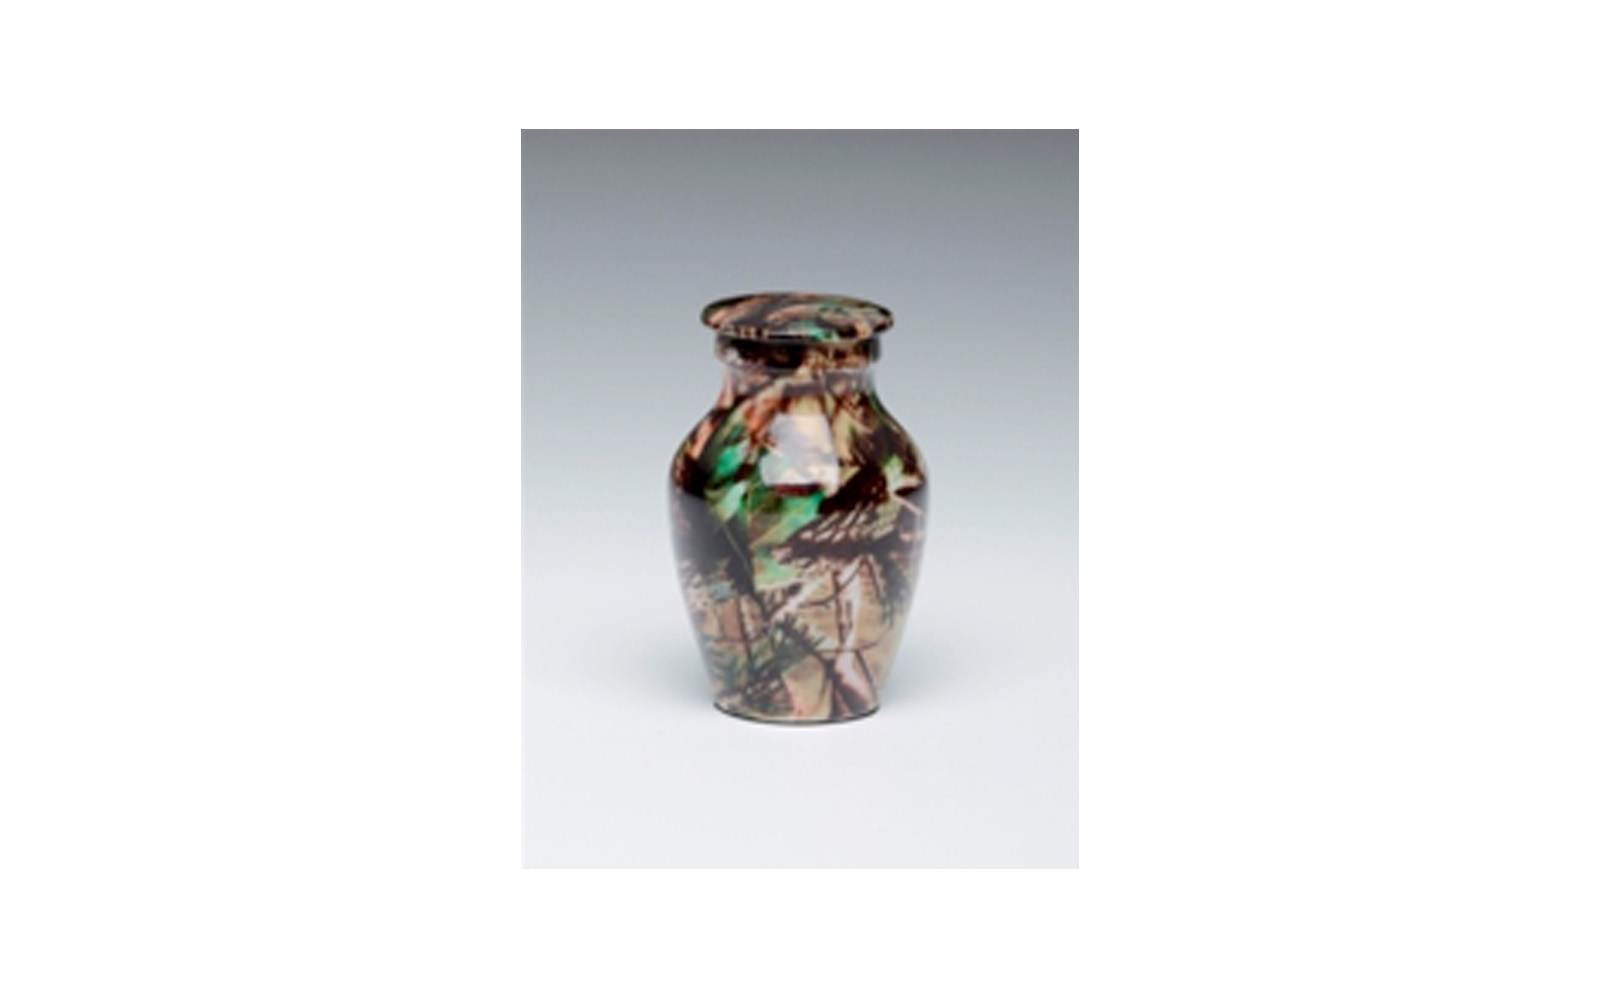 """Mossy Oak Camouflage Keepsake   This keepsake displays a """"Camouflage"""" Design, is highly durable, and has a Threaded Lid.Measures 2 ¾"""" H, 3 Cu. Inches, up to 2 lbs.,  $45"""